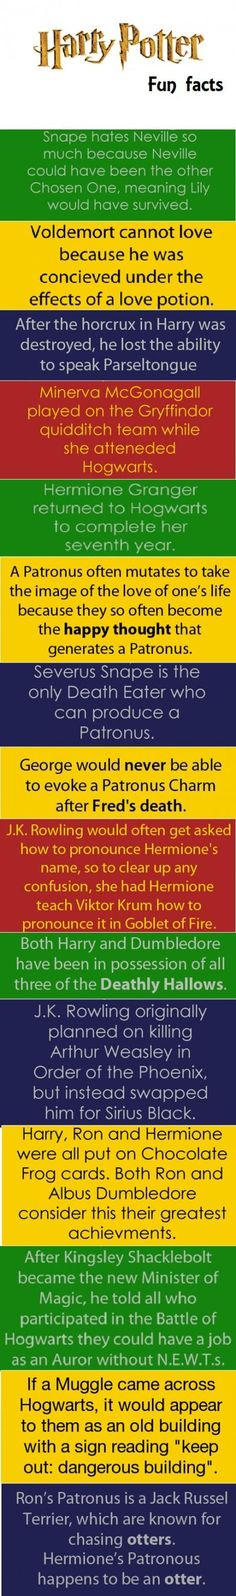 Harry Potter facts you probably did(n't) know.